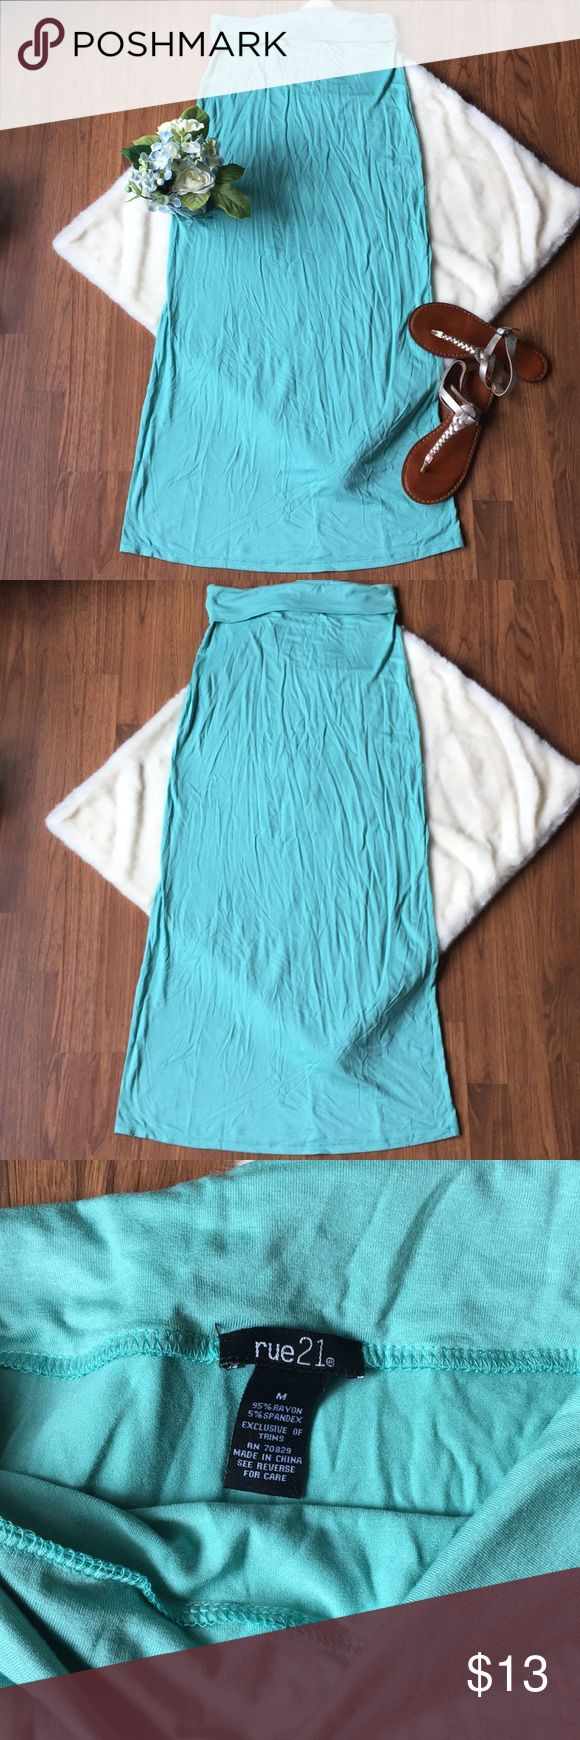 """Rue 21 Mint Maxi Skirt Stretchy, cozy maxi skirt by Rue 21. Fold over waist. 14"""" flat across waist, 35.5"""" top to bottom. Says medium but more like a small. Rue 21 Skirts Maxi"""